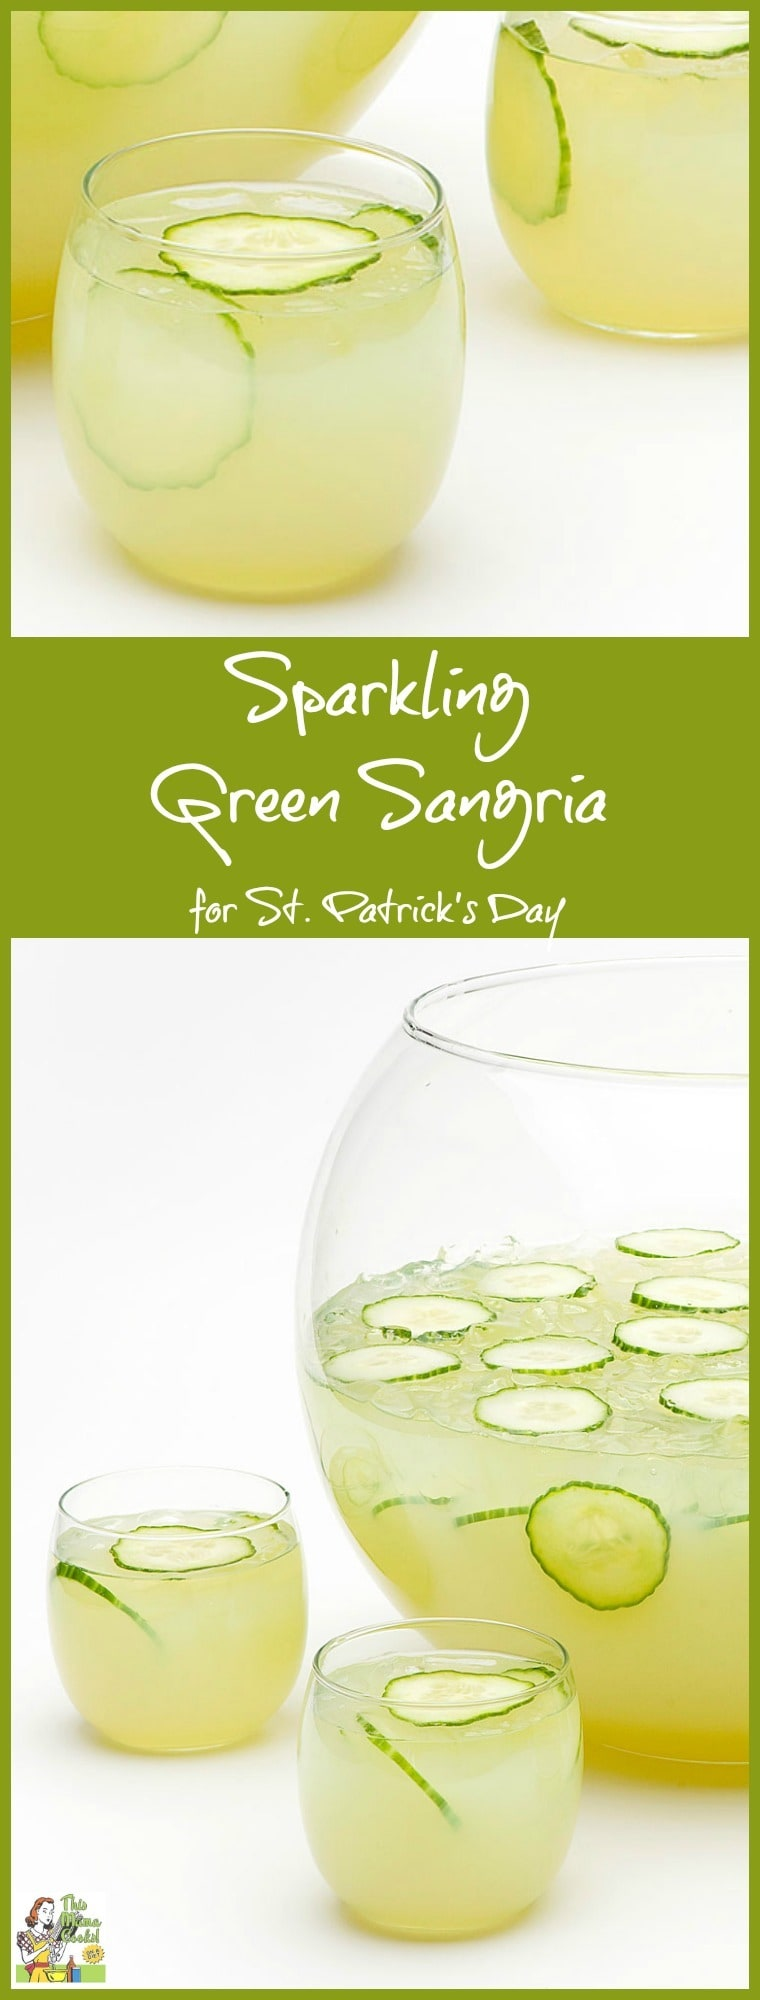 Gluten free or looking for an alternative to heavy Guiness or yucky green beer? Try this refreshing gluten free Sparkling Green Sangria recipe for St. Patrick's Day. It's a skinny green cocktail alternative!